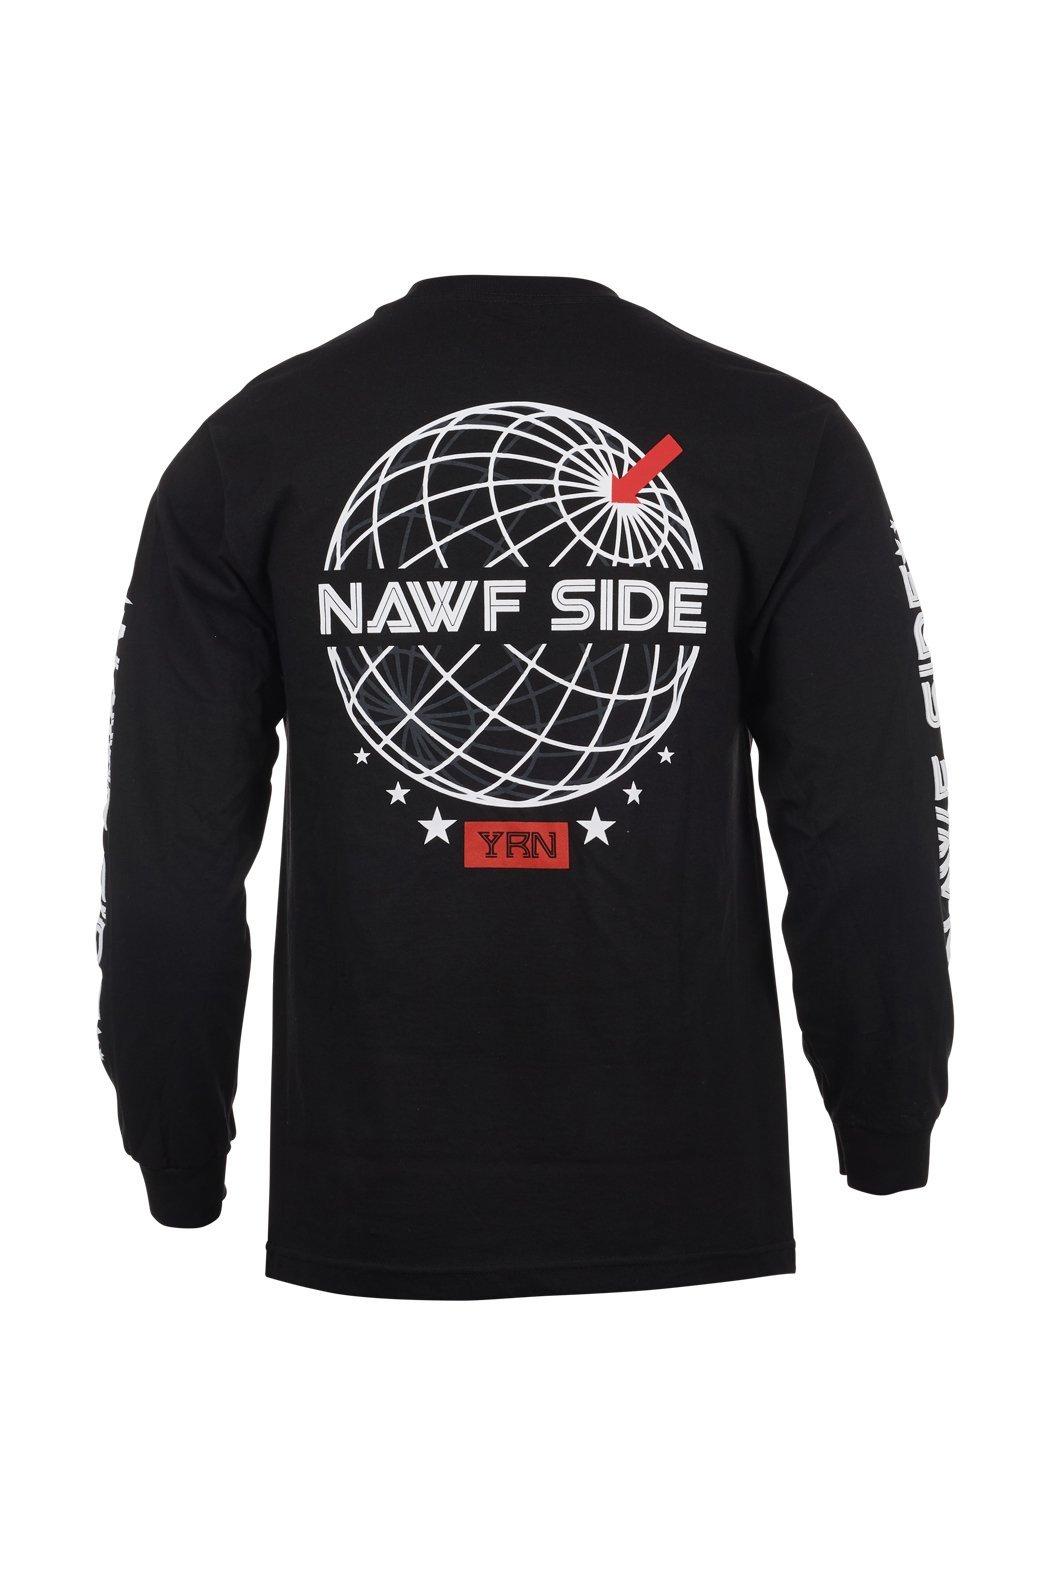 Yung Rich Nation Official Migos Clothing Brand- NAWF Side Long Sleeve Tee Shirt - Authentic by Yung Rich Nation (Image #2)